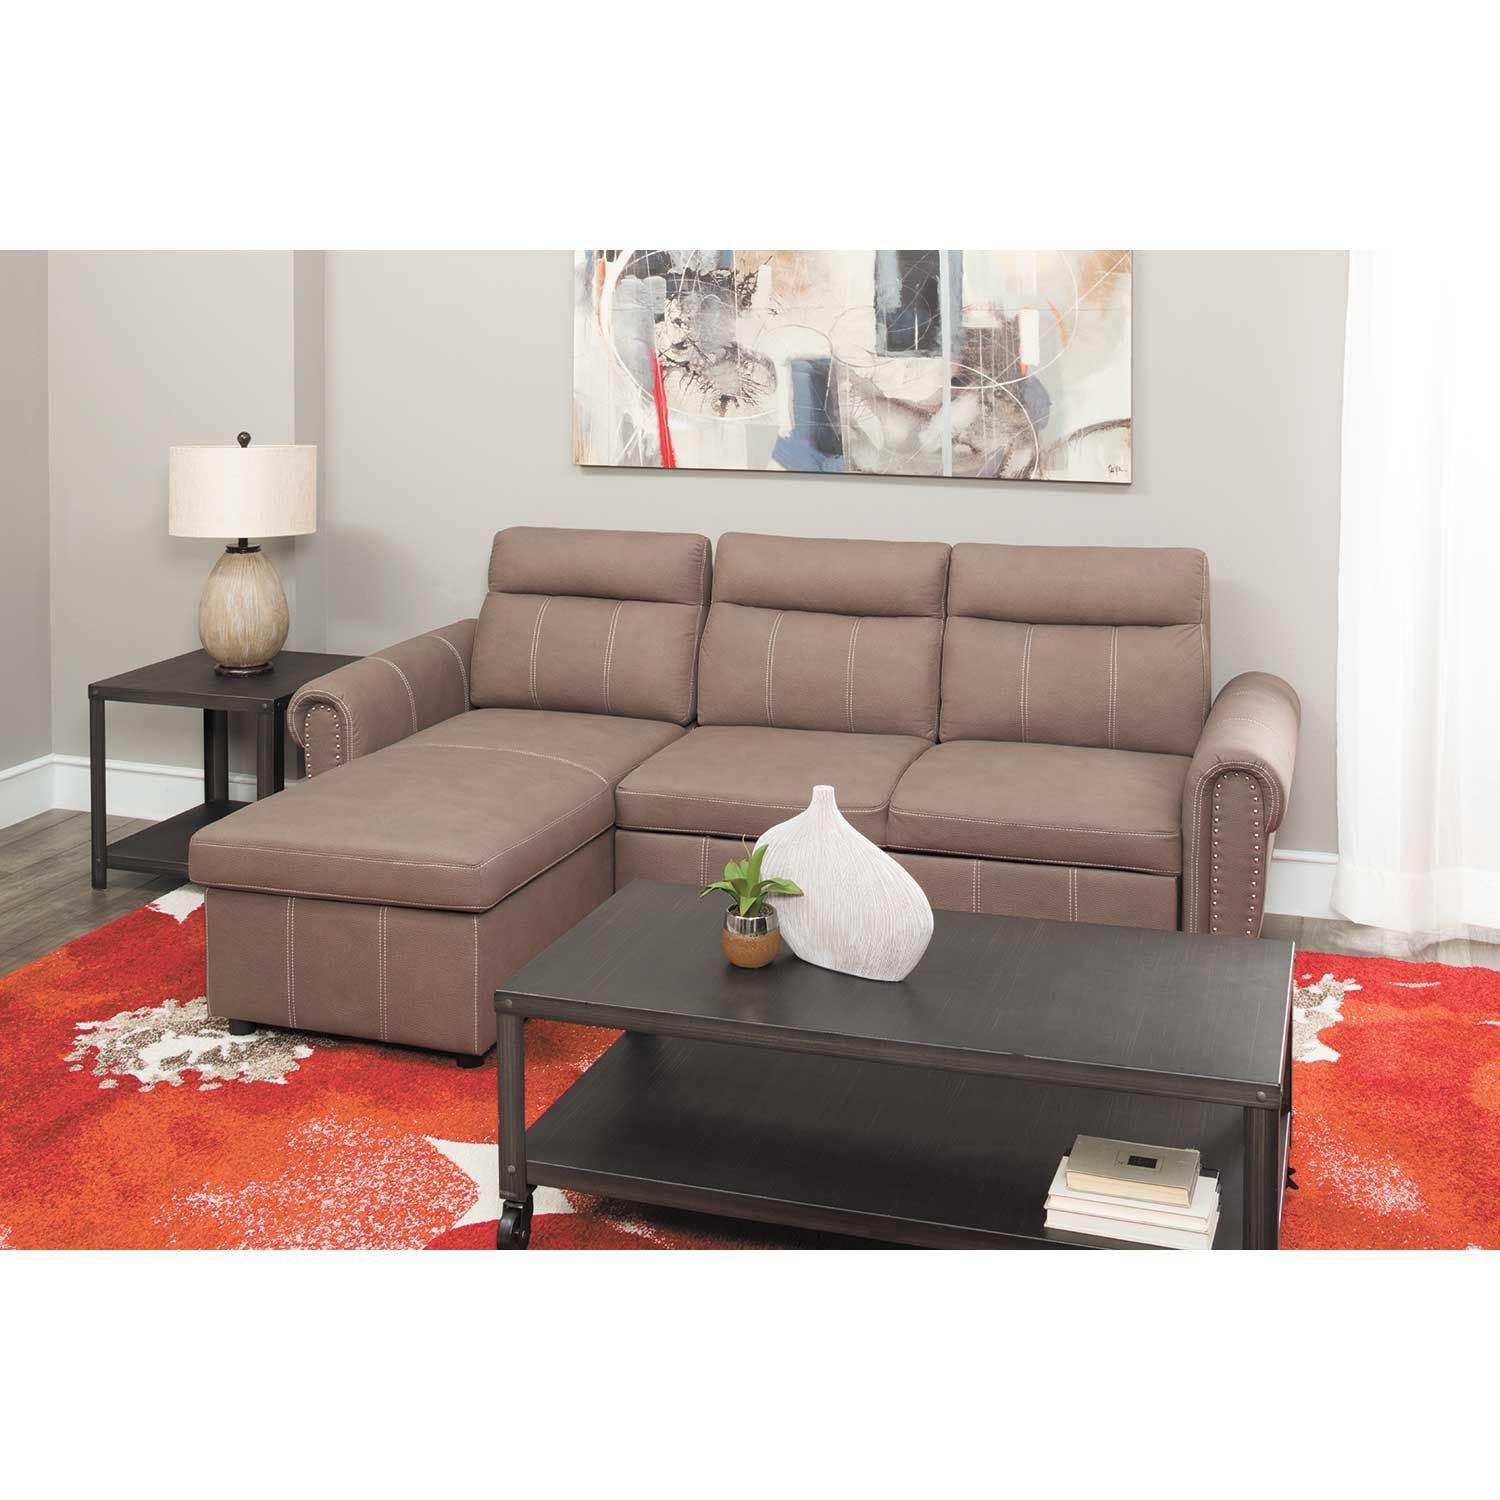 Farrel  Piece Sectional With Pull Out Bed